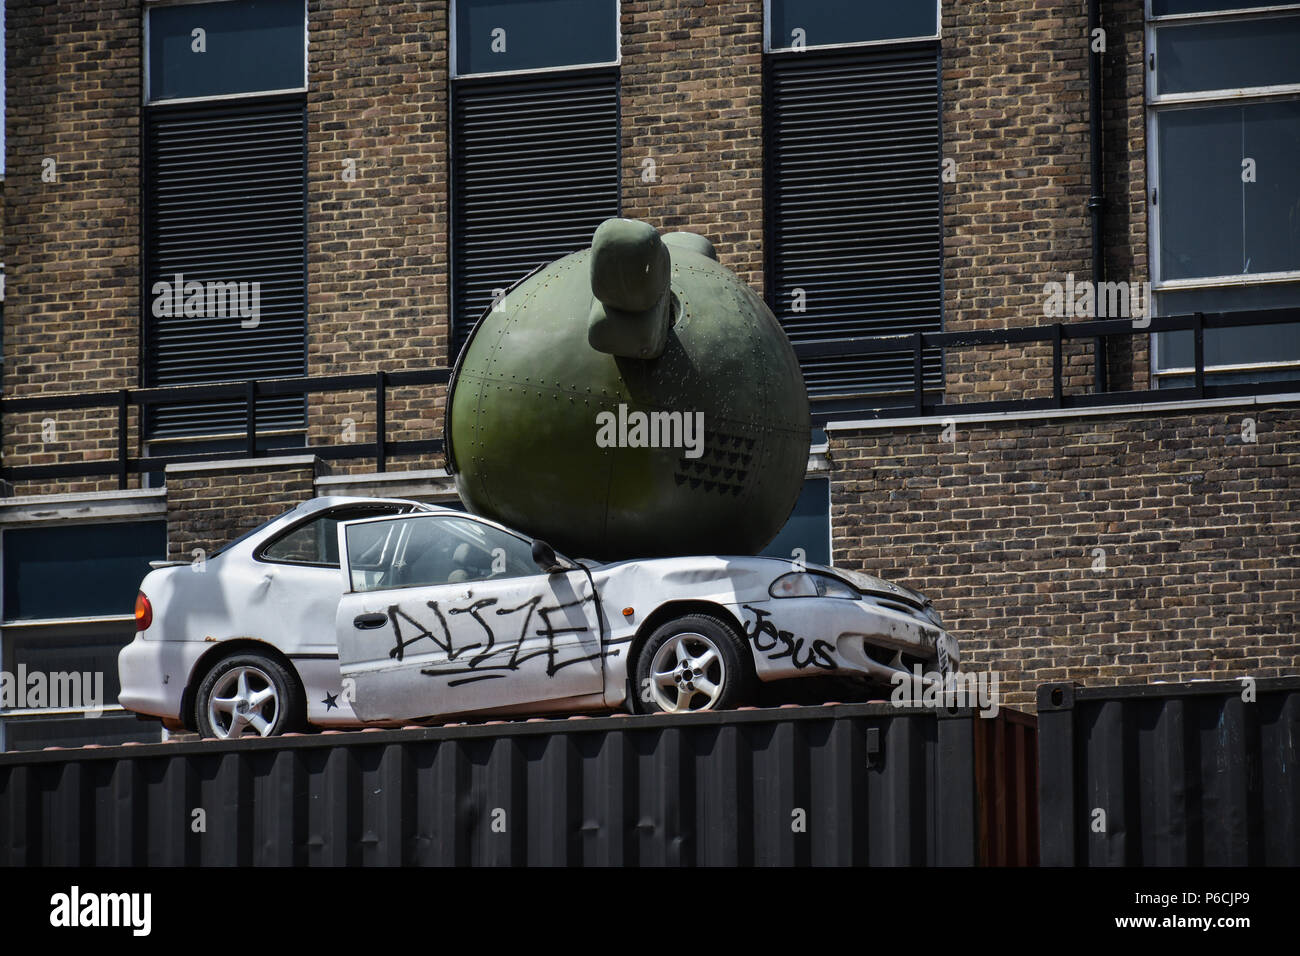 Artistic installation in the Brick lane district, London. - Stock Image